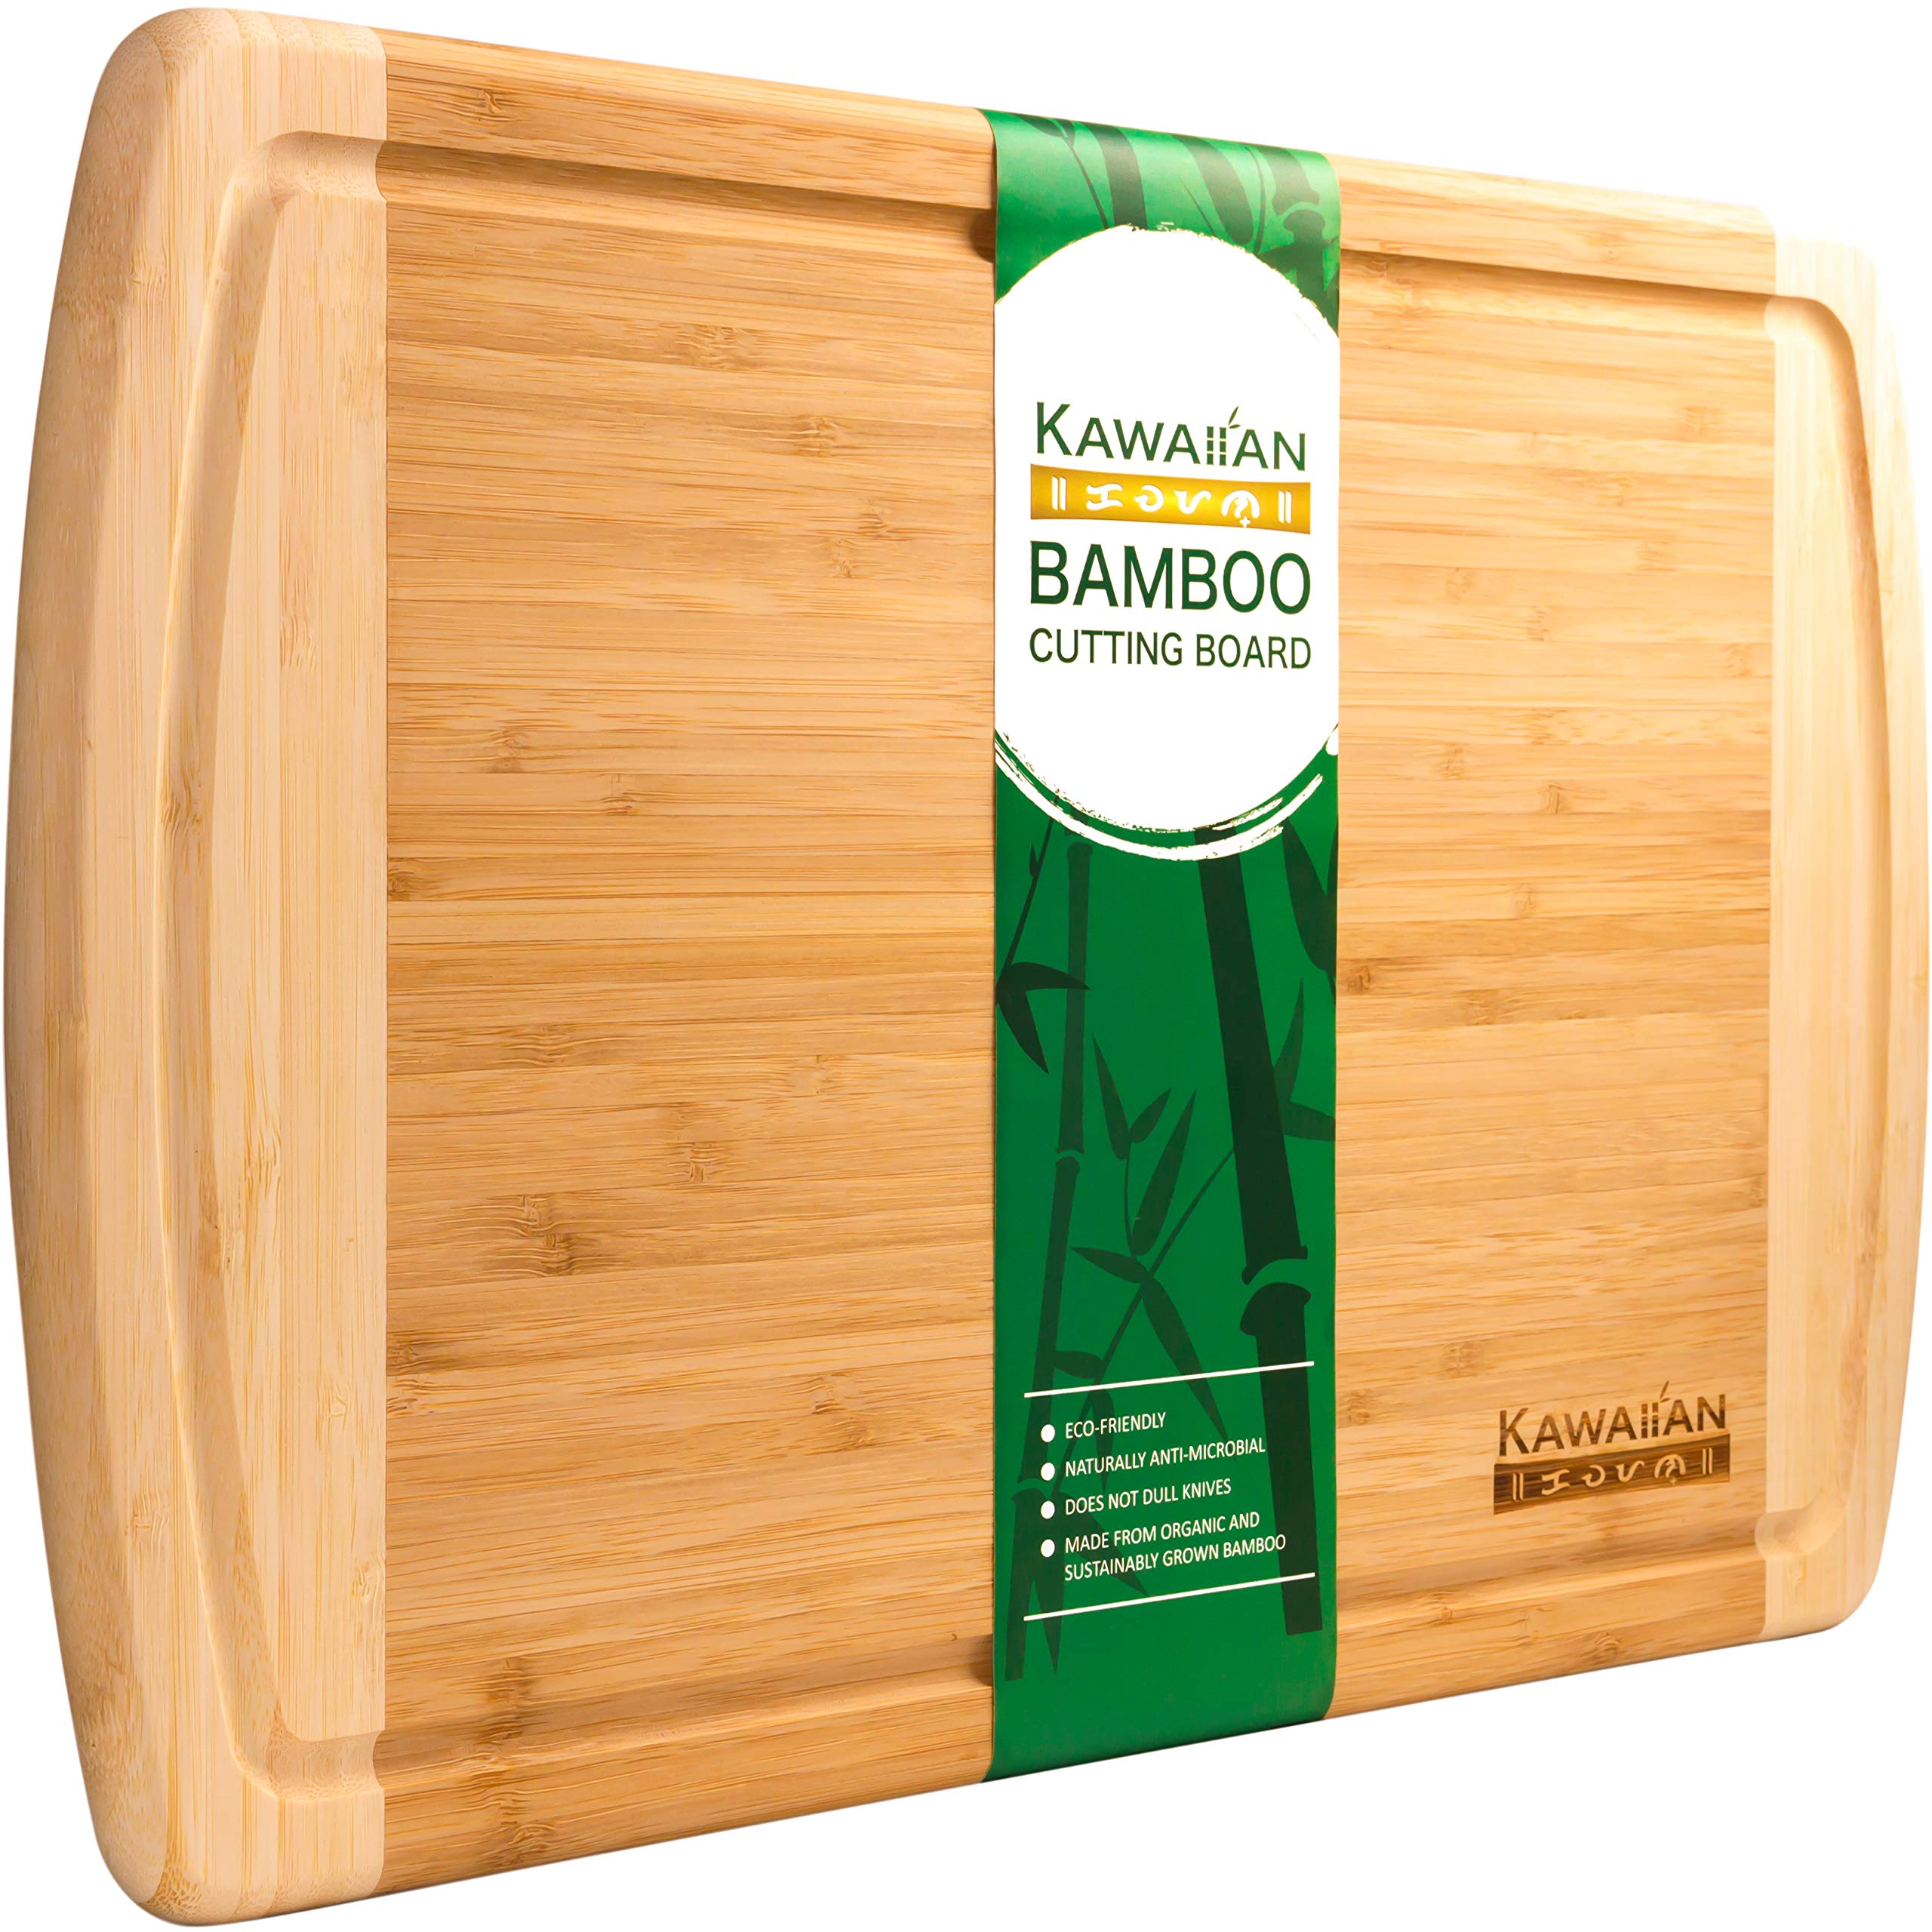 Professional Grade, Bamboo Cutting Board by Kawaiian - Precision Cutting Surface & Easy Clean Up - Extra Large, 18x12.5 inches - 100% Organic, Top Quality Wood Cutting Boards for Kitchen by KAWAIIAN KITCHEN